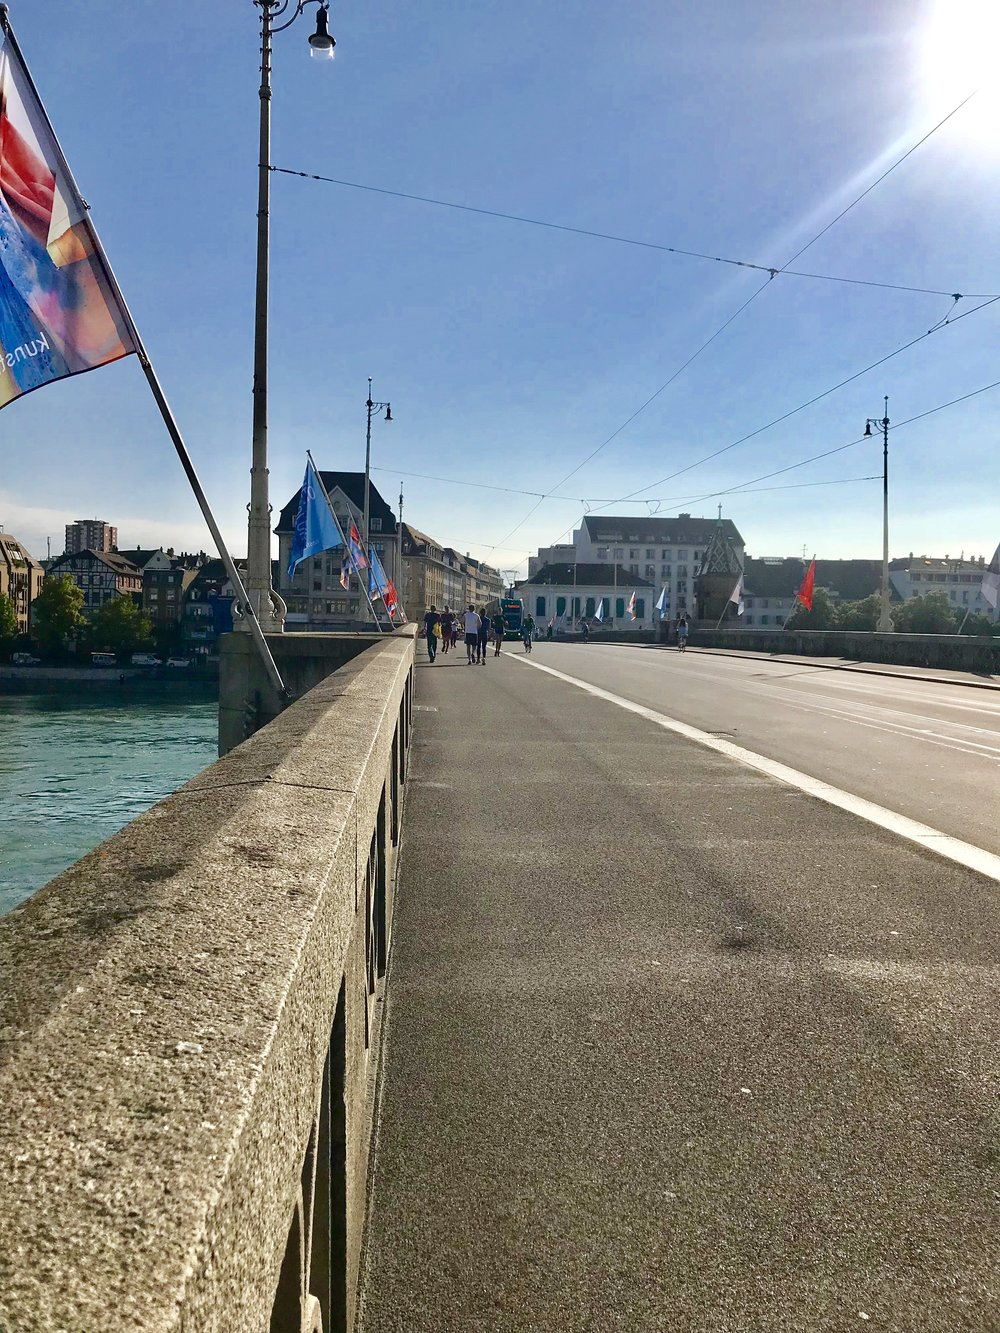 Strolls across the bridge, Basel. Photo: Naomi Tsvirko